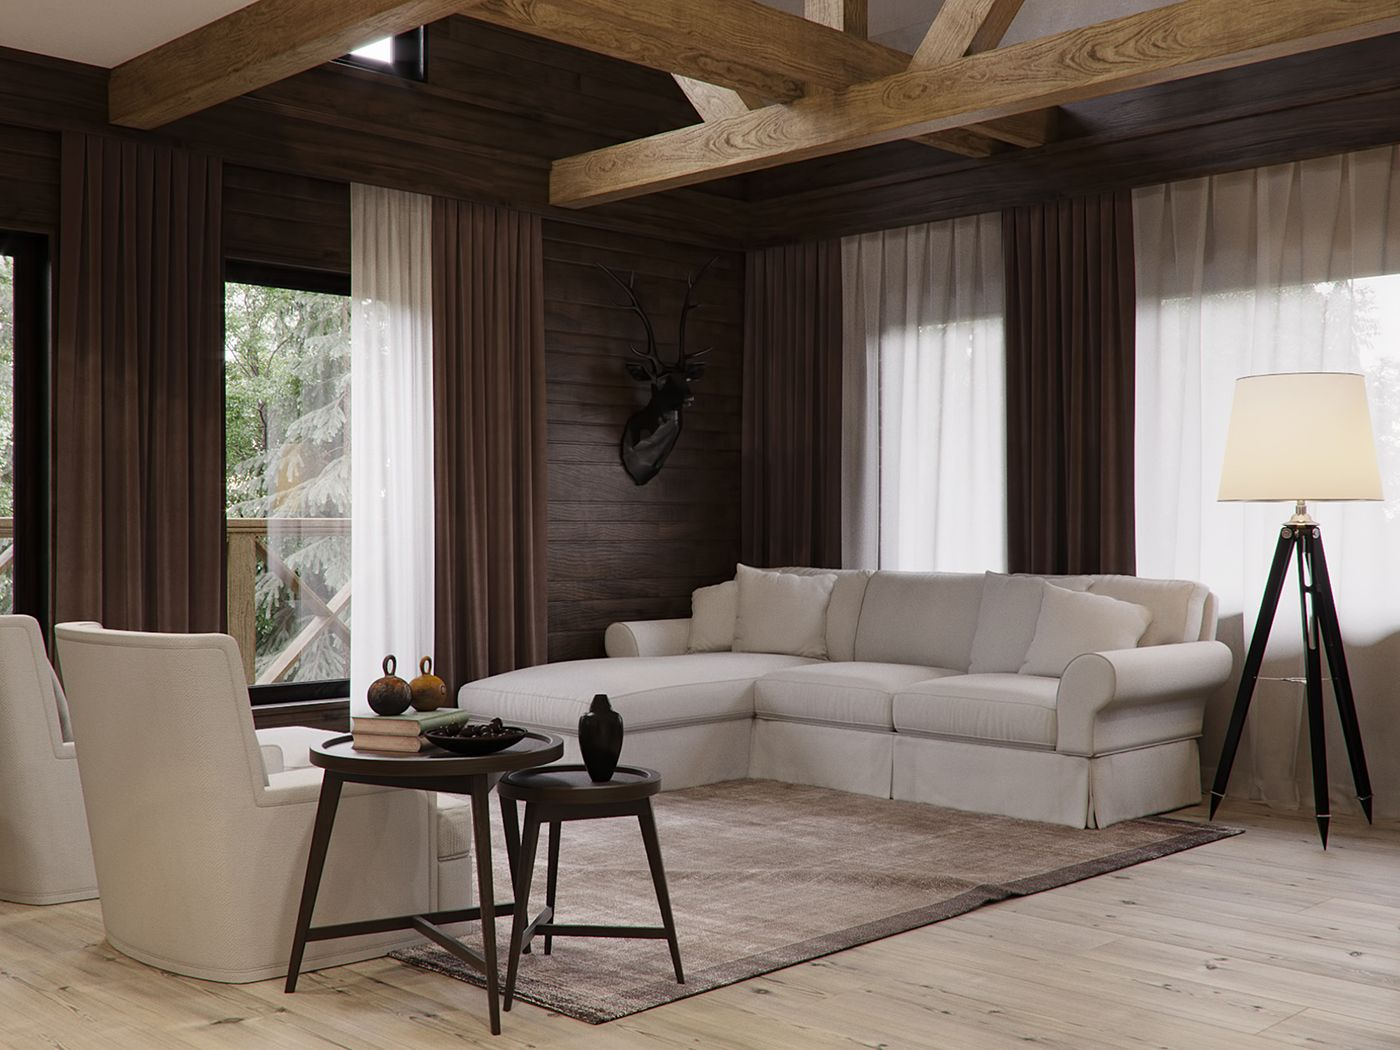 Country house in chalet style on Behance | 16...chalet | Pinterest ...